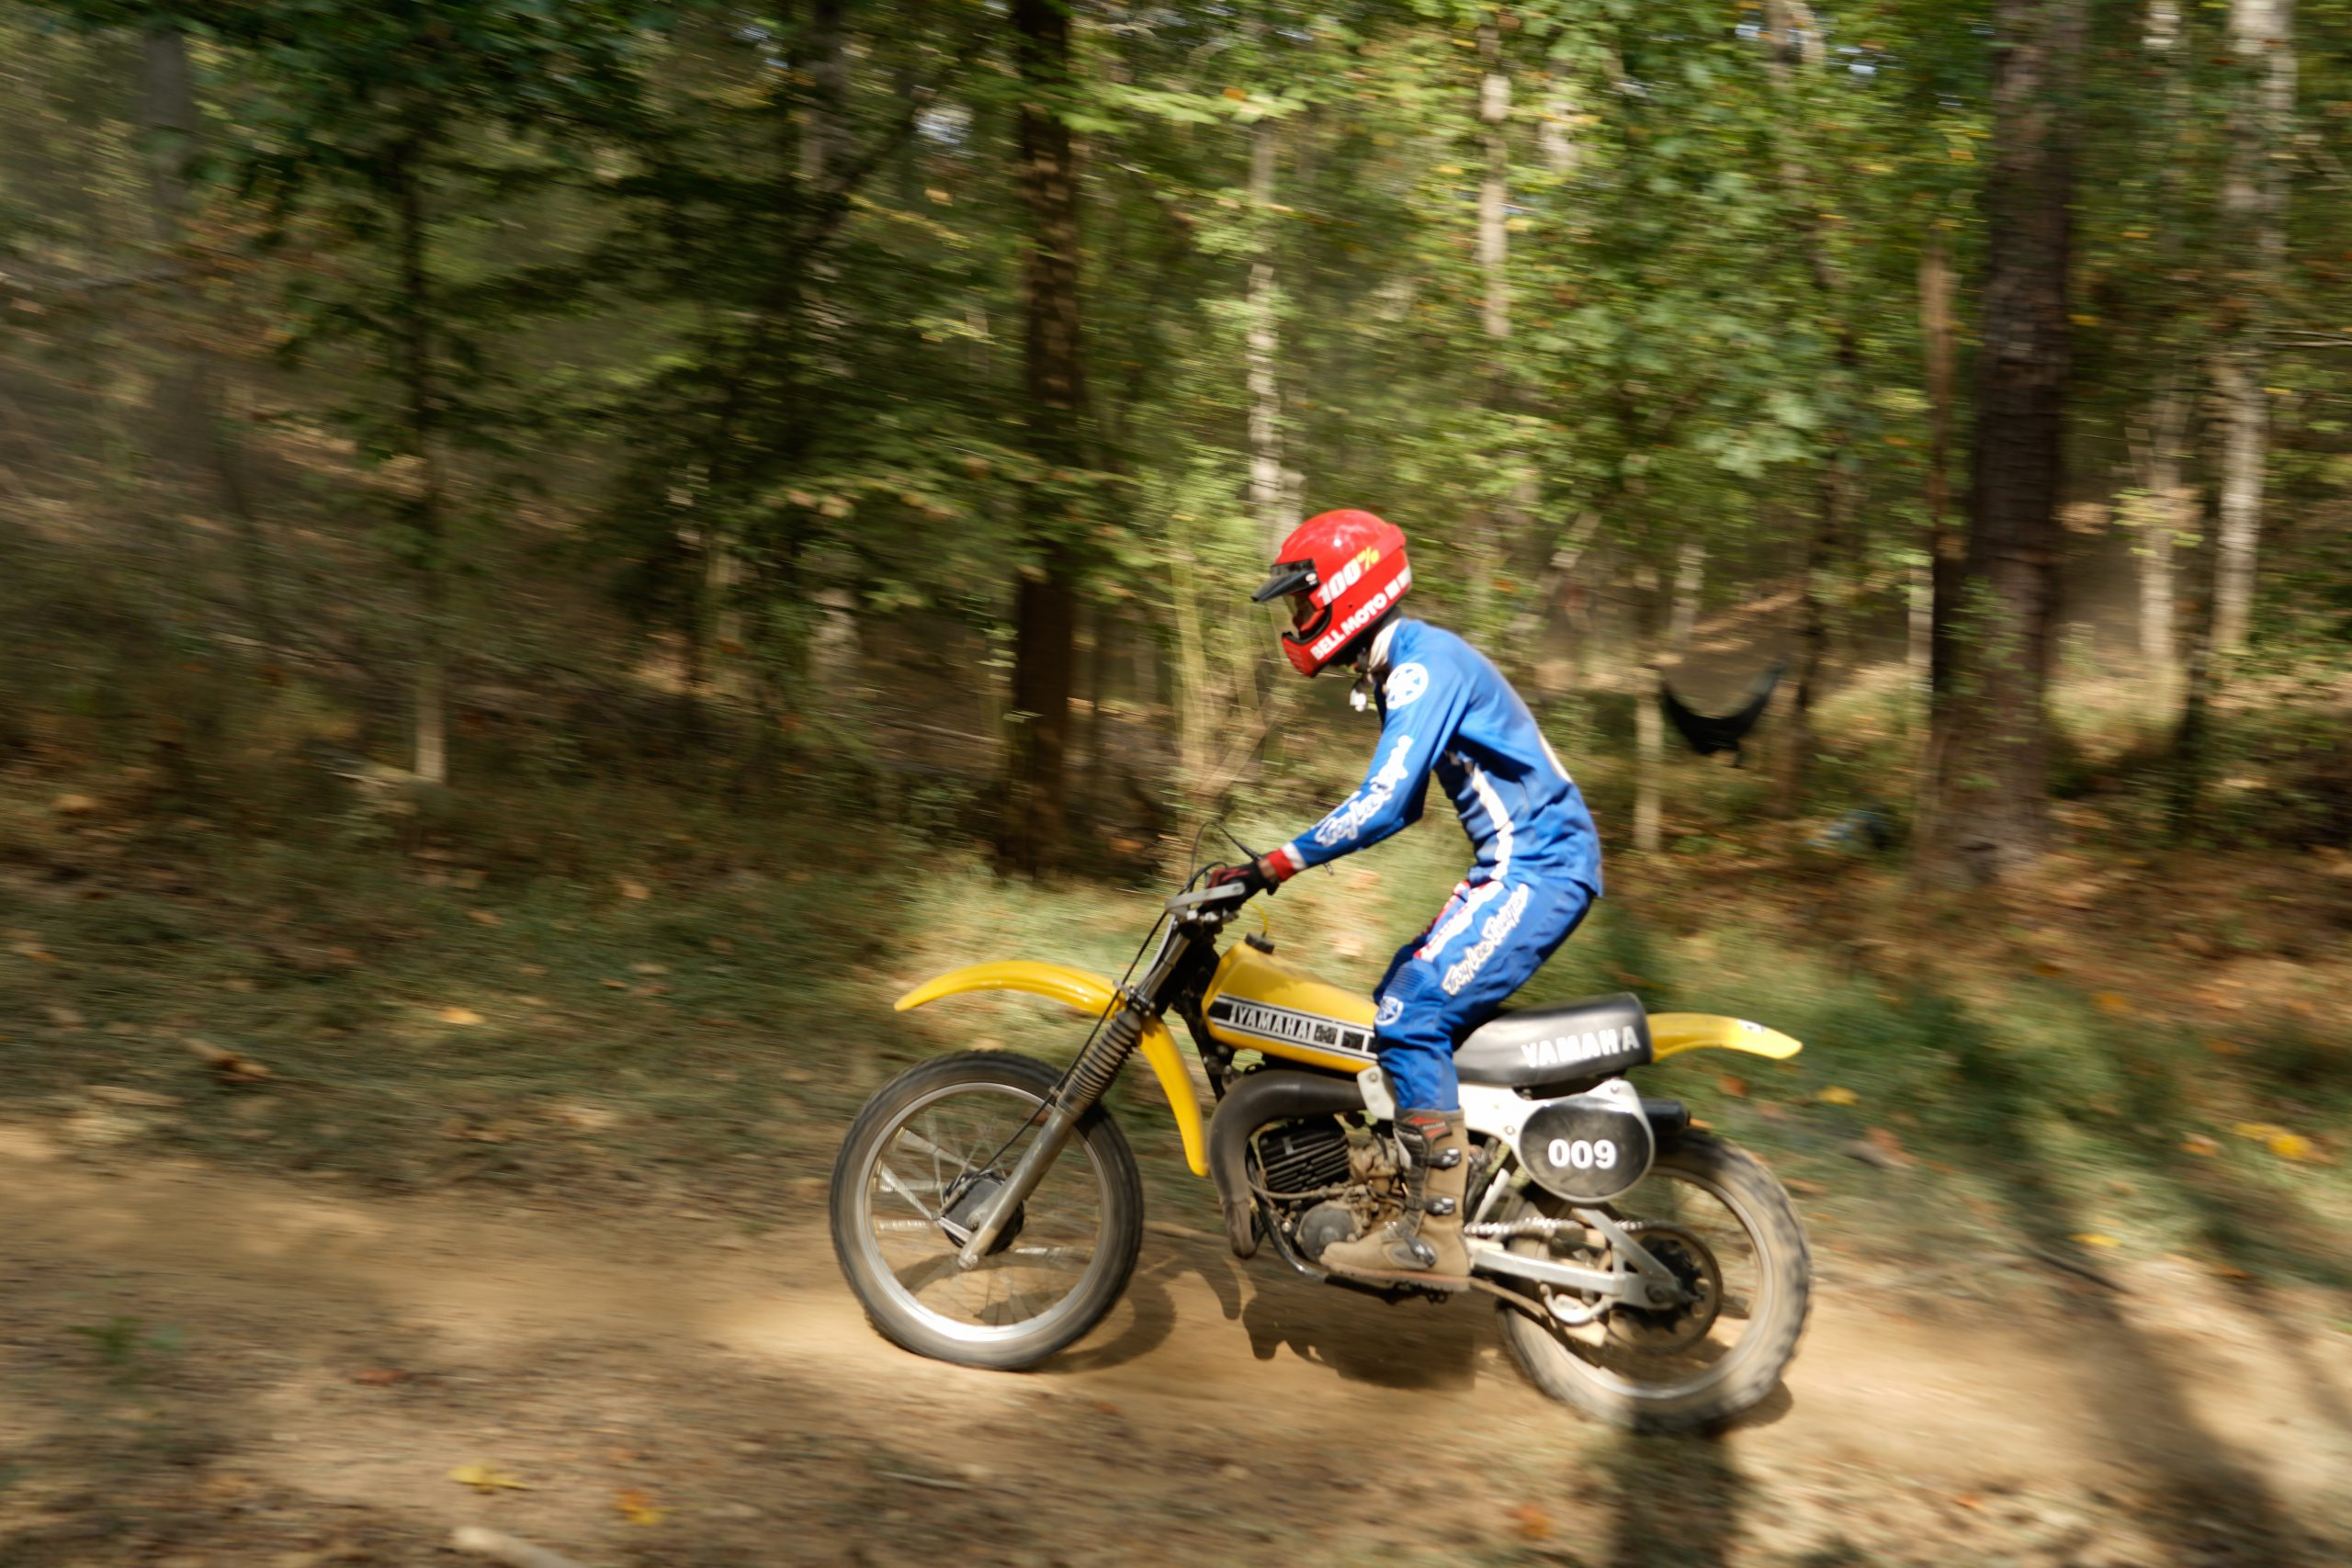 Kyle Smith racing YZ125 at Barber Vintage Festival profile